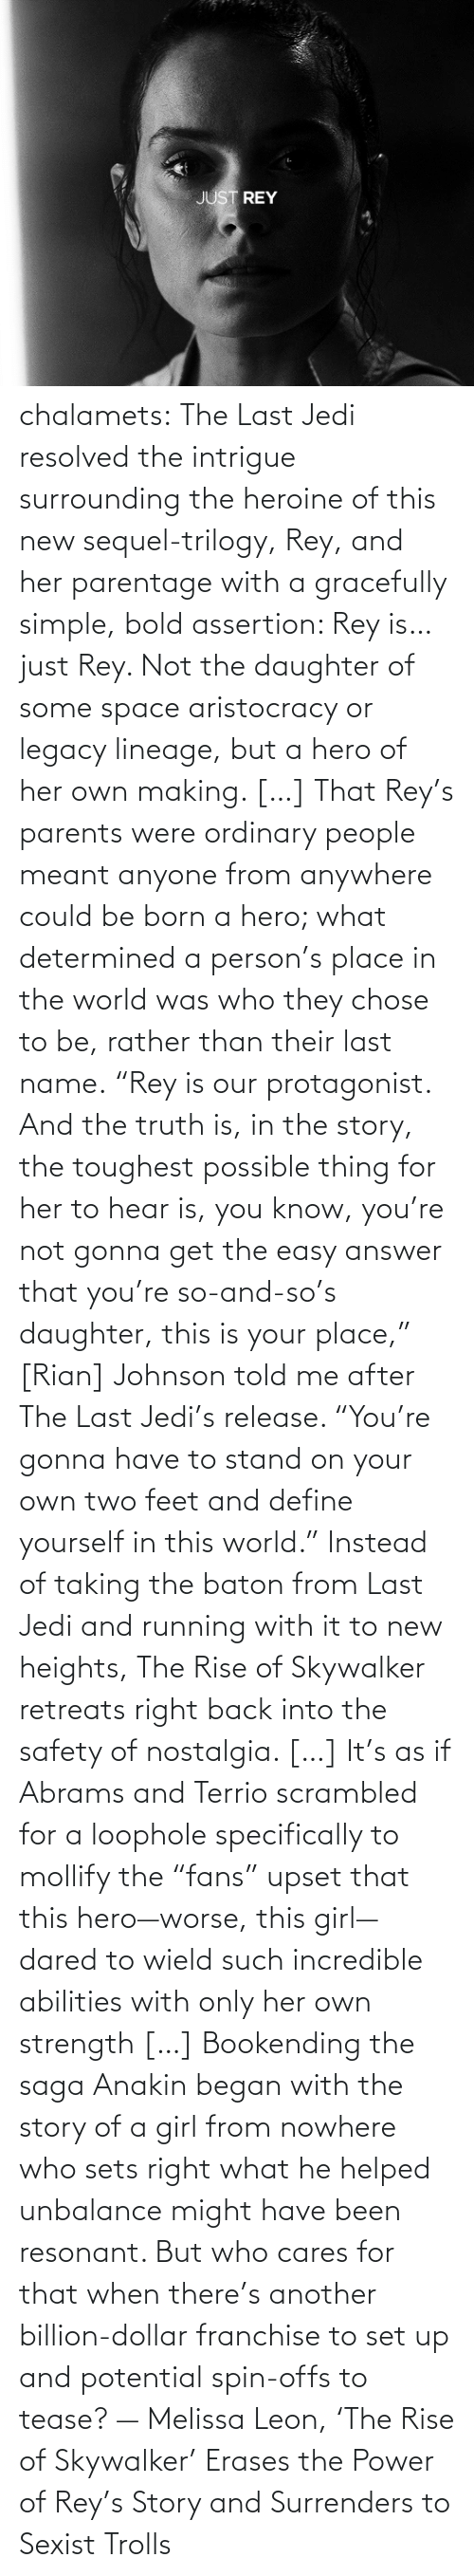 "told me: chalamets:  The Last Jedi resolved the intrigue surrounding the heroine of this new sequel-trilogy, Rey, and her parentage with a gracefully simple, bold assertion: Rey is… just Rey. Not the daughter of some space aristocracy or legacy lineage, but a hero of her own making. […] That Rey's parents were ordinary people meant anyone from anywhere could be born a hero; what determined a person's place in the world was who they chose to be, rather than their last name. ""Rey is our protagonist. And the truth is, in the story, the toughest possible thing for her to hear is, you know, you're not gonna get the easy answer that you're so-and-so's daughter, this is your place,"" [Rian] Johnson told me after The Last Jedi's release. ""You're gonna have to stand on your own two feet and define yourself in this world."" Instead of taking the baton from Last Jedi and running with it to new heights, The Rise of Skywalker retreats right back into the safety of nostalgia. […] It's as if Abrams and Terrio scrambled for a loophole specifically to mollify the ""fans"" upset that this hero—worse, this girl—dared to wield such incredible abilities with only her own strength […] Bookending the saga Anakin began with the story of a girl from nowhere who sets right what he helped unbalance might have been resonant. But who cares for that when there's another billion-dollar franchise to set up and potential spin-offs to tease? — Melissa Leon, 'The Rise of Skywalker' Erases the Power of Rey's Story and Surrenders to Sexist Trolls"